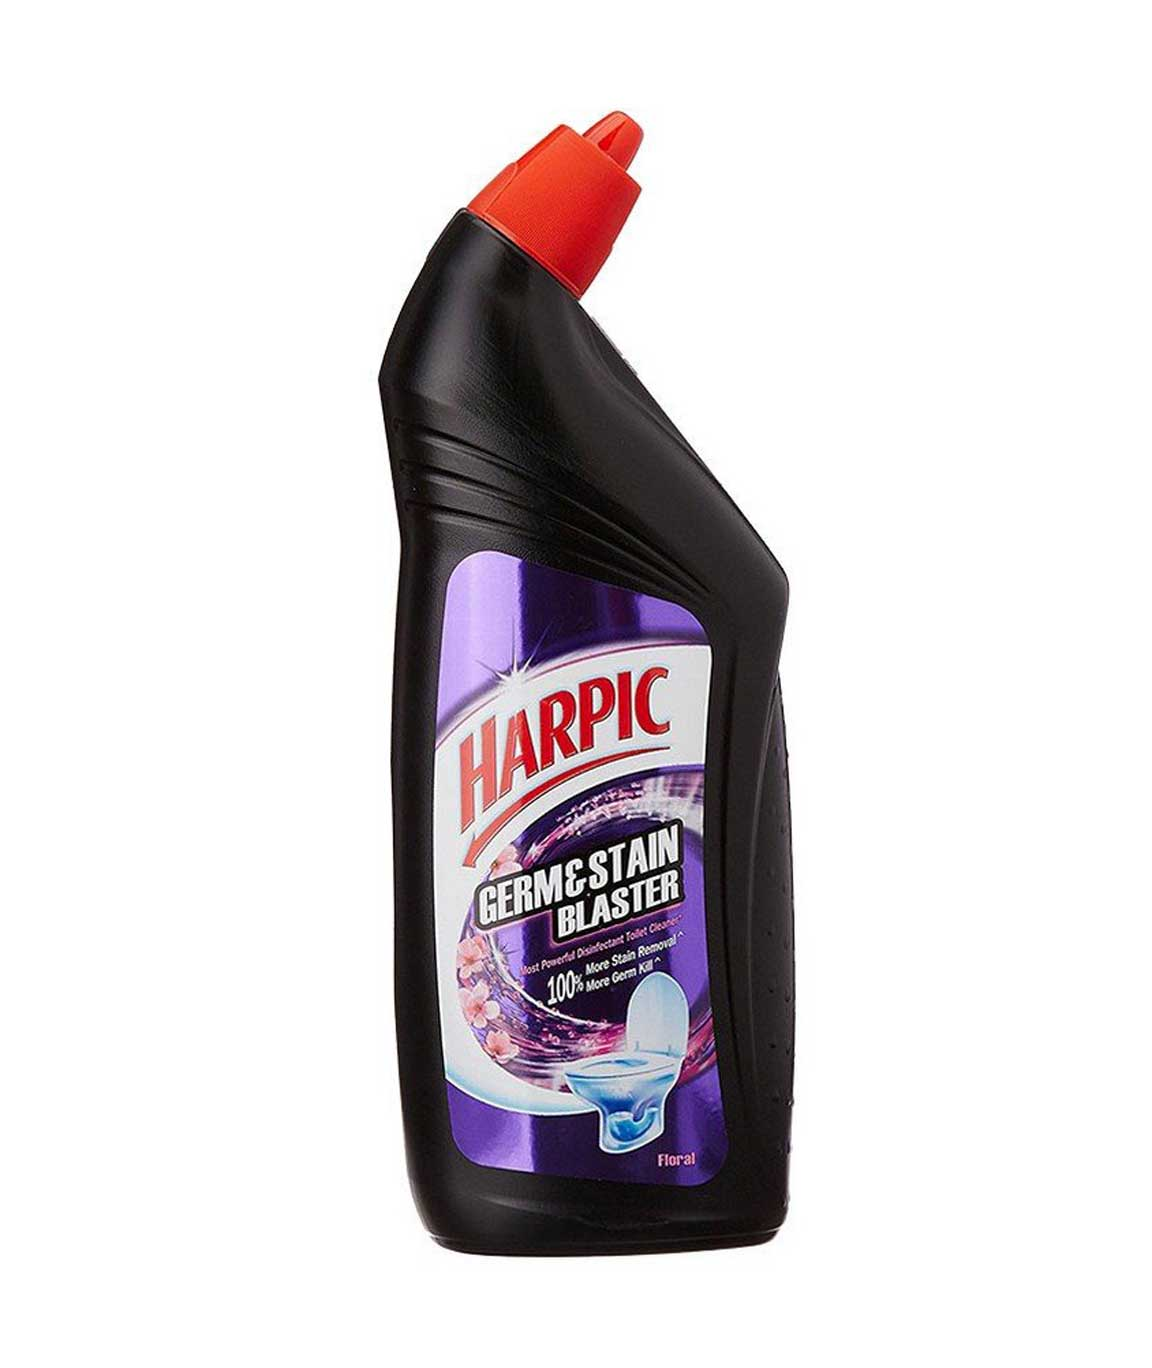 Harpic Germ and Stain Blaster Toilet Cleaner (Floral) - 750 ml